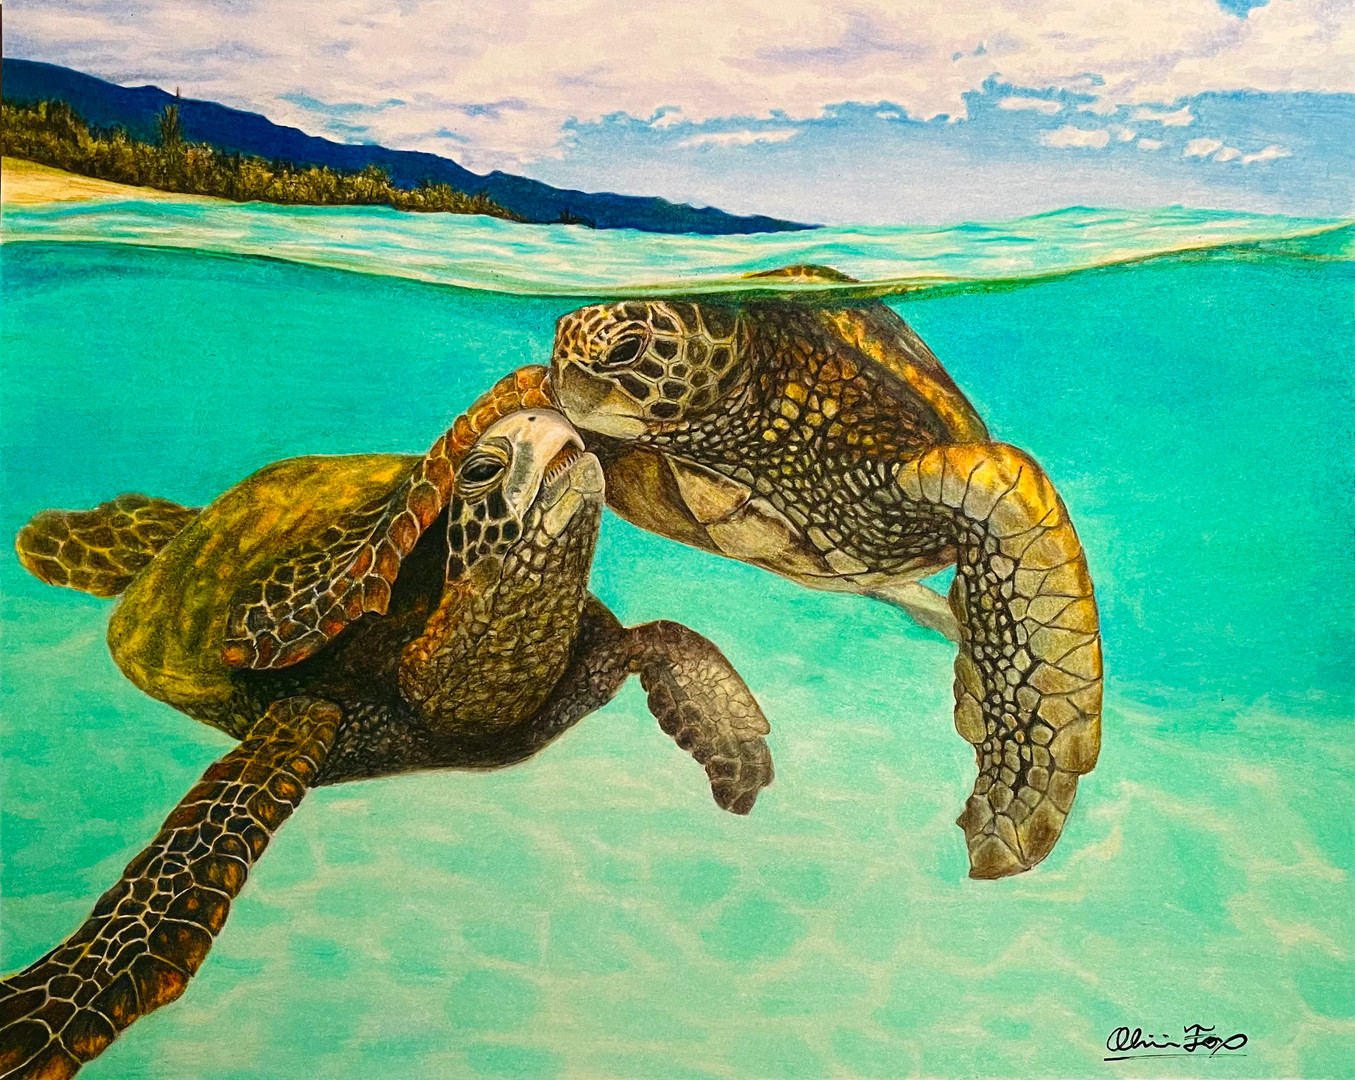 Sea Turtles - Olivia Fox.jpg